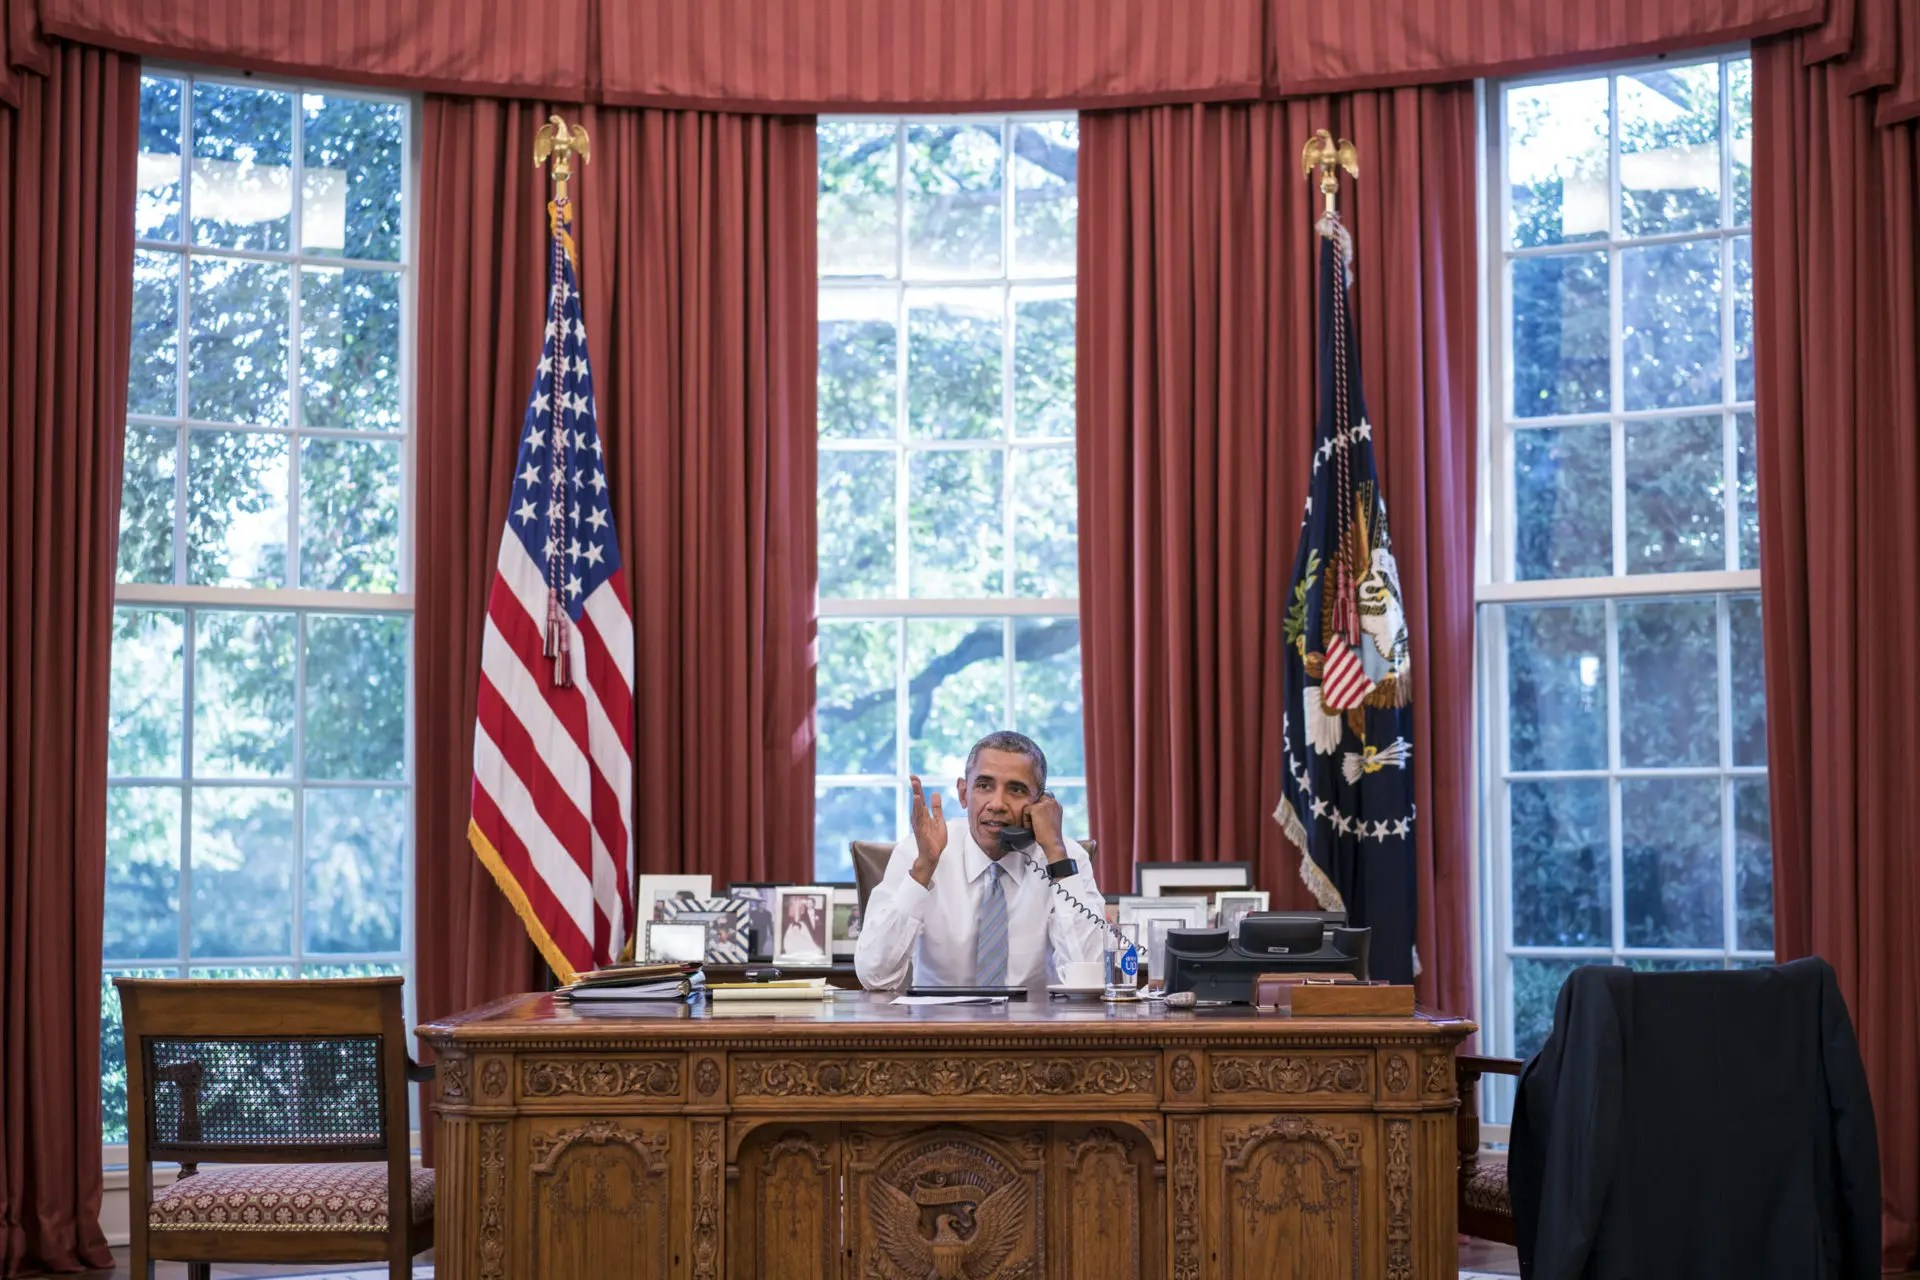 Photo Credit: President Barack Obama talks on the phone with Cuba President Raúl Castro in the Oval Office, Sept. 18, 2015. (Official White House Photo by Pete Souza on Flickr) The use of this photo in no way reflects approval or endorsement of Pete Souza, President Obama, the First Family, or the White House.